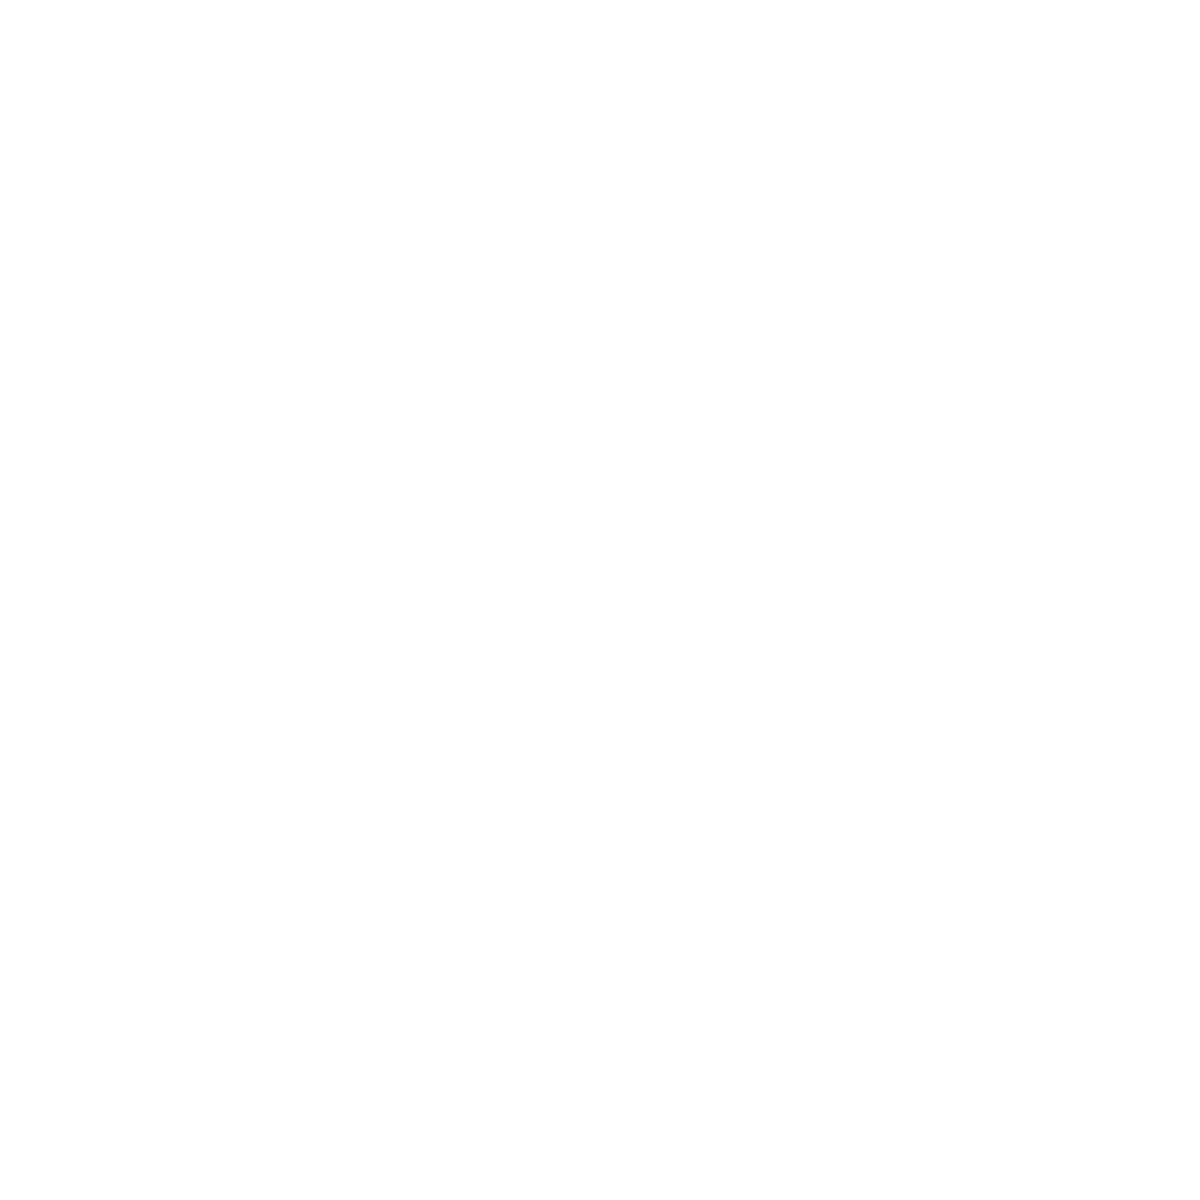 WFOT Congrès International 2022 - Paris